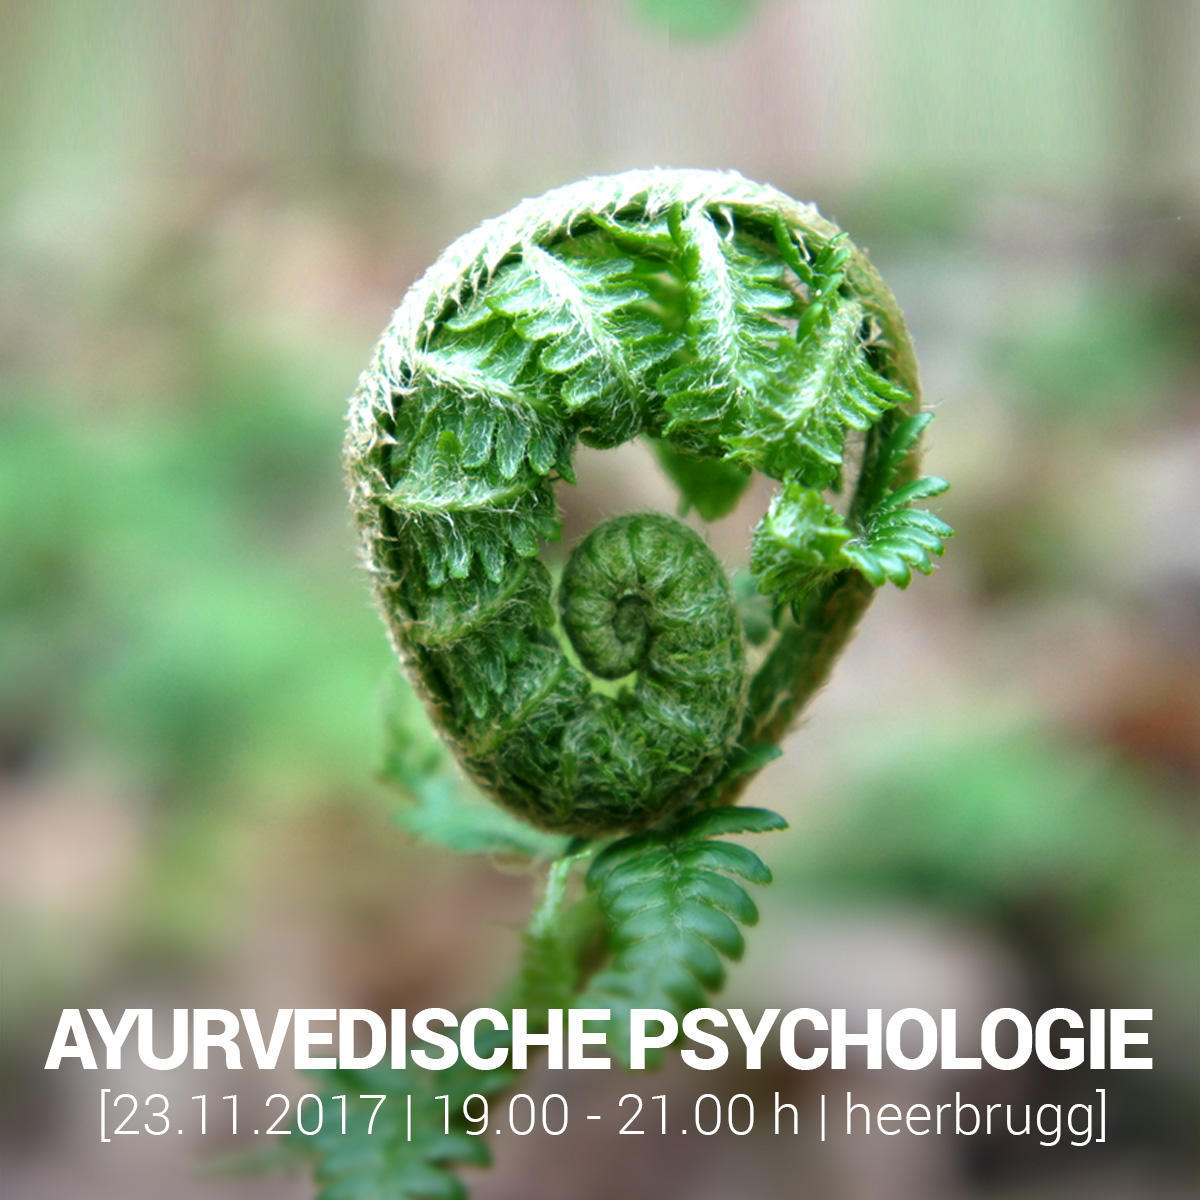 AYURVEDISCHE PSYCHOLOGIE - WORKSHOP